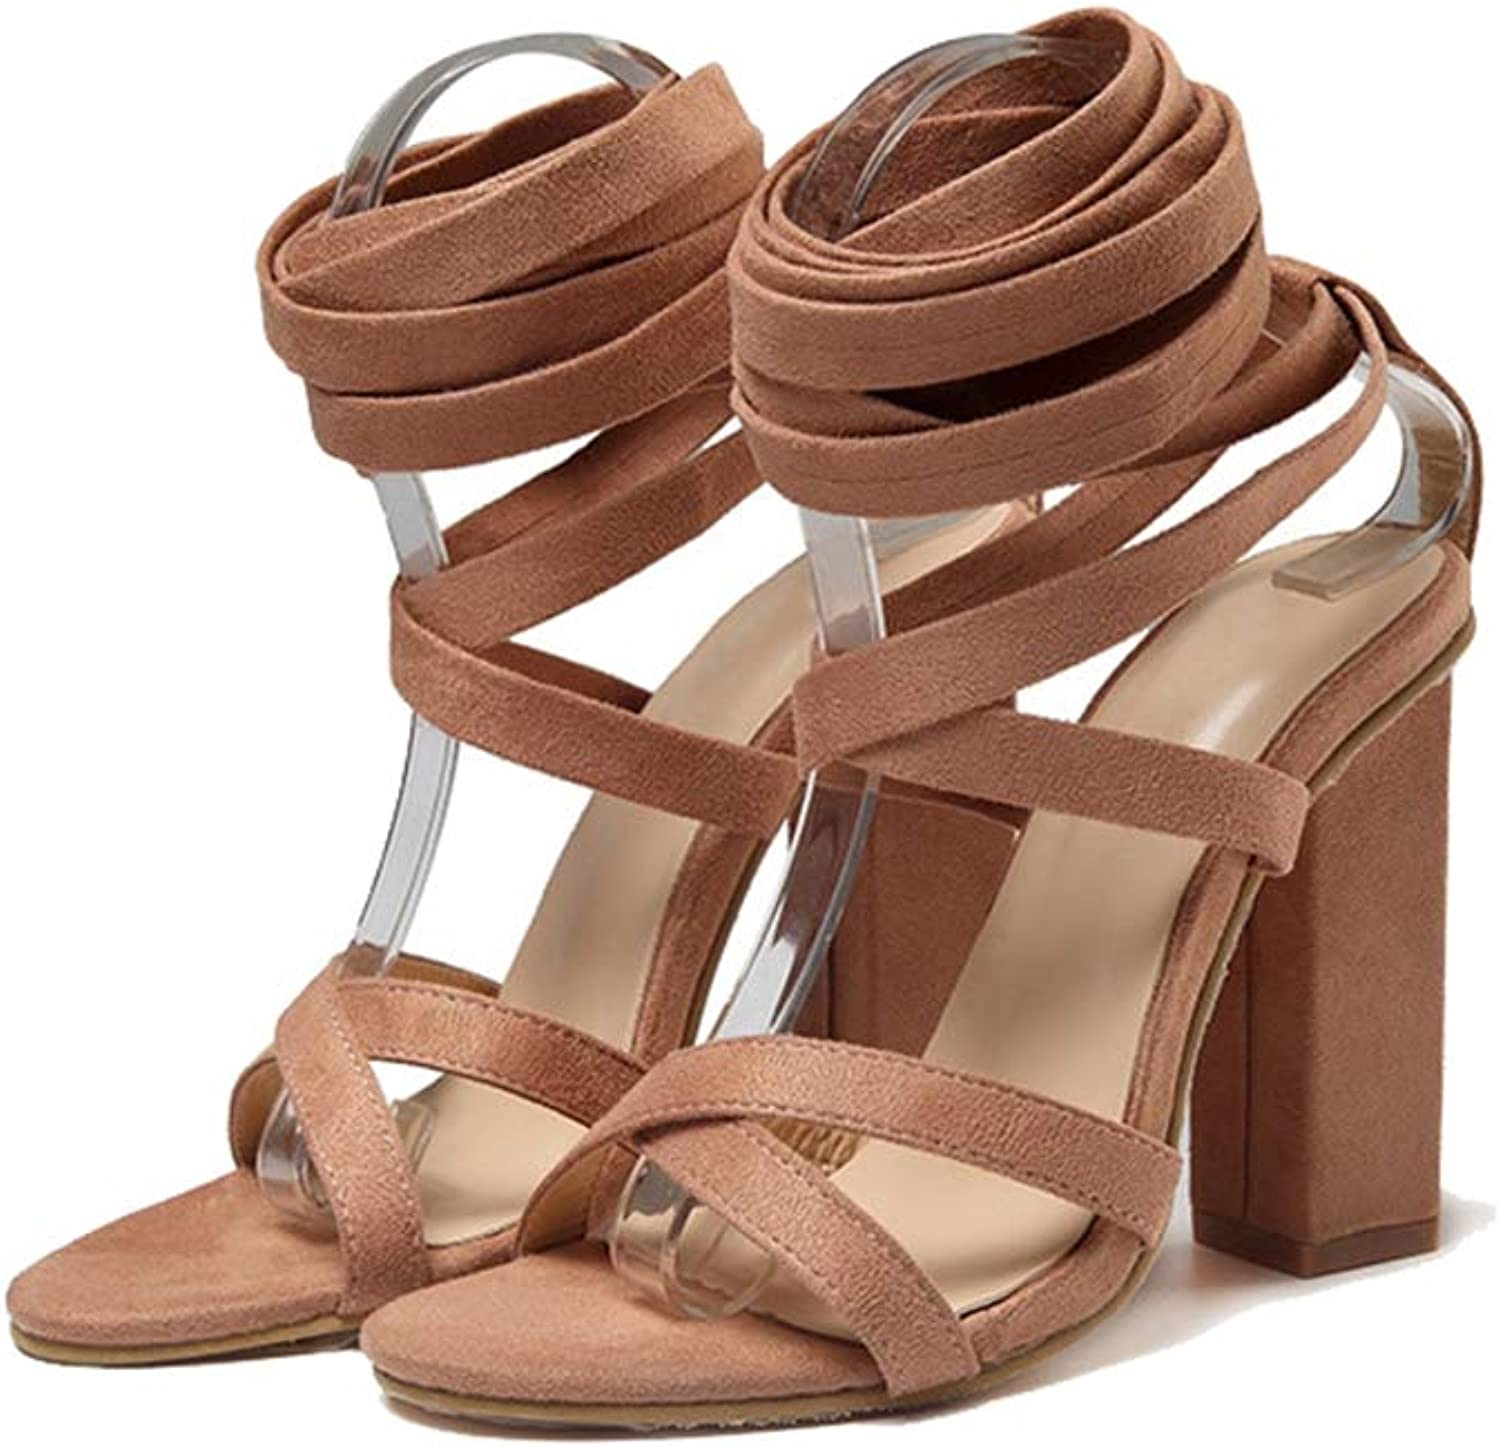 Women's Pumps,Summer Classic Chunky Heel Red Khaki Ankle Strap Sandals